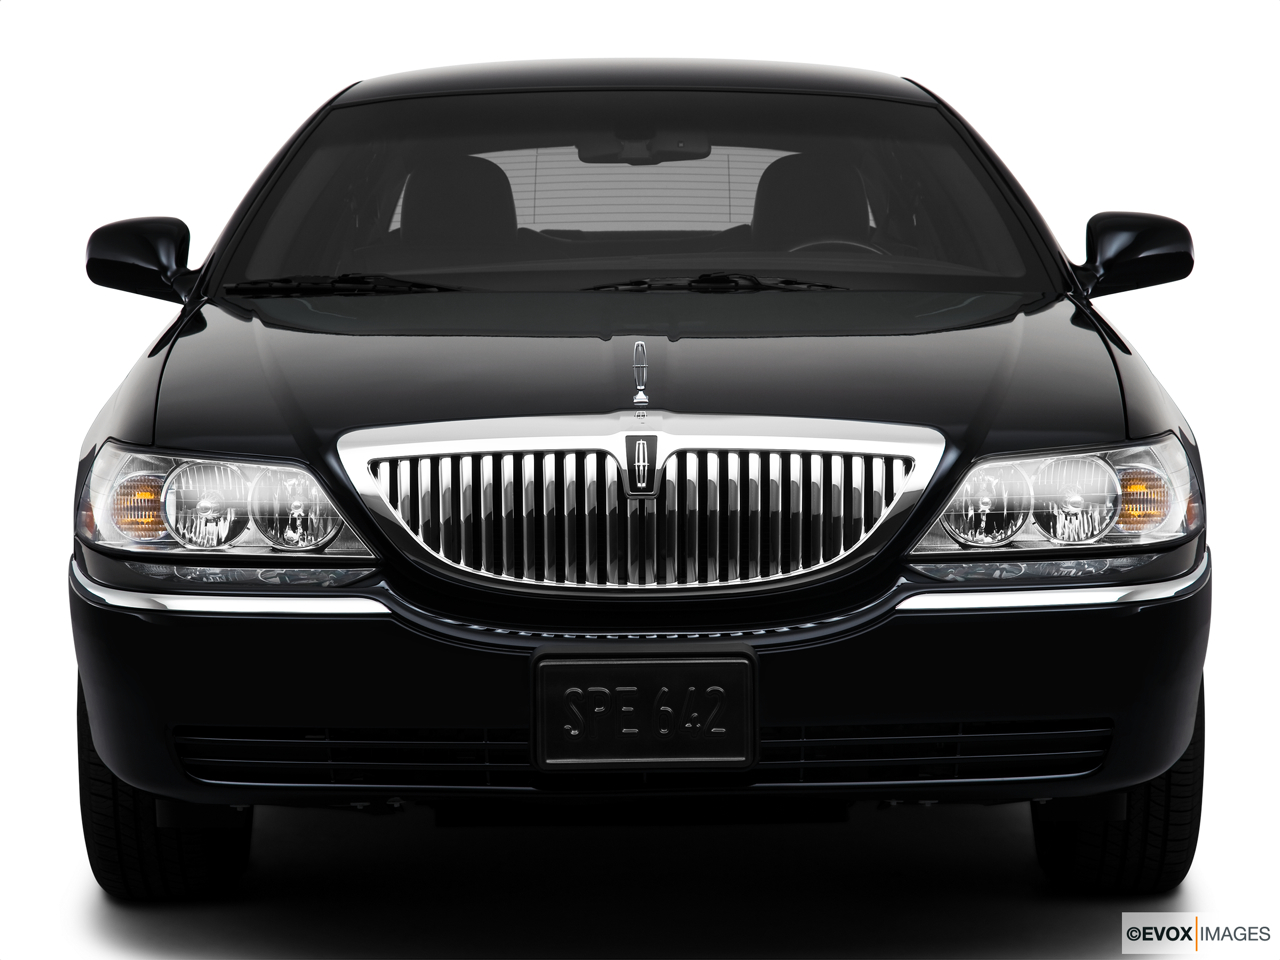 2010 Lincoln Town Car Signature L Low/wide front.